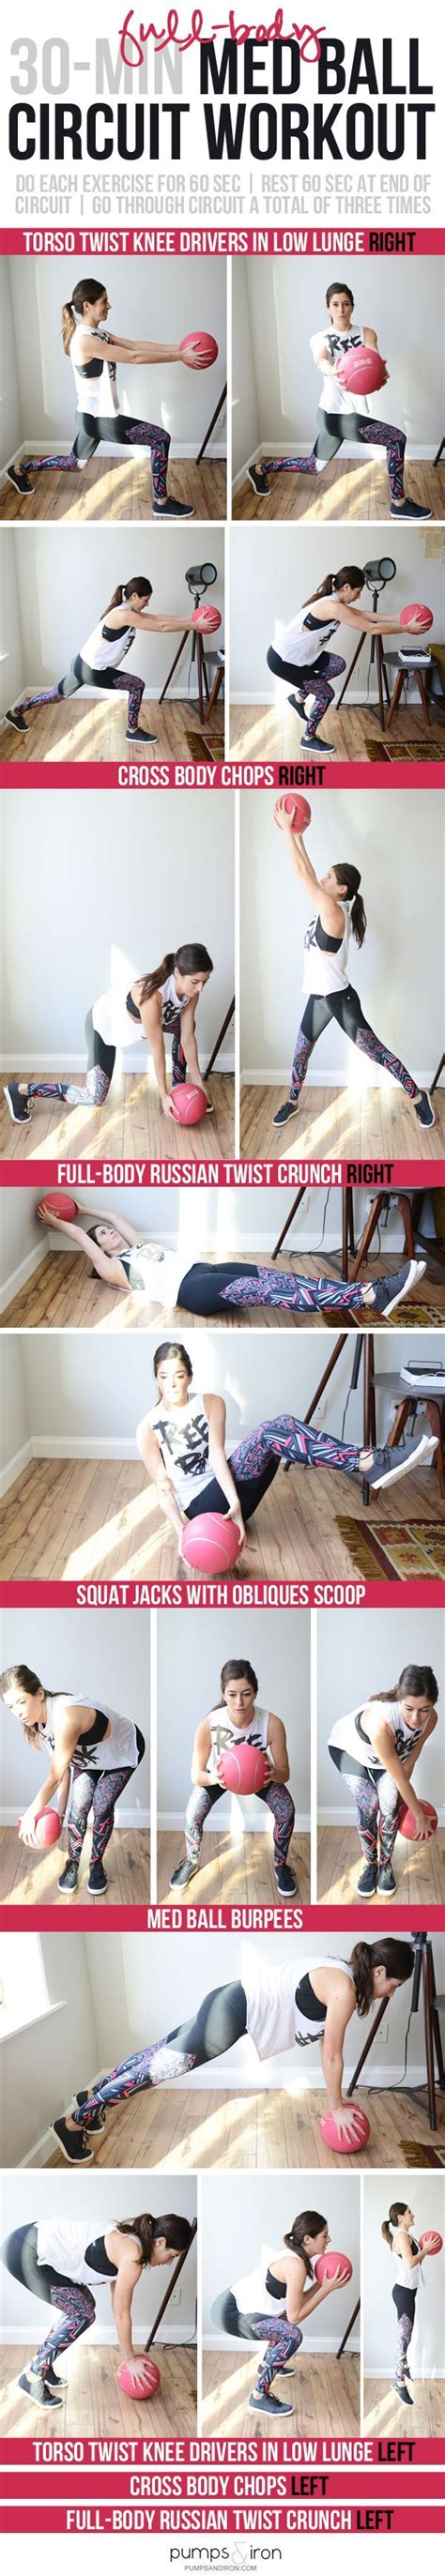 workout circuit body ball medicine minute dumbbell med workouts